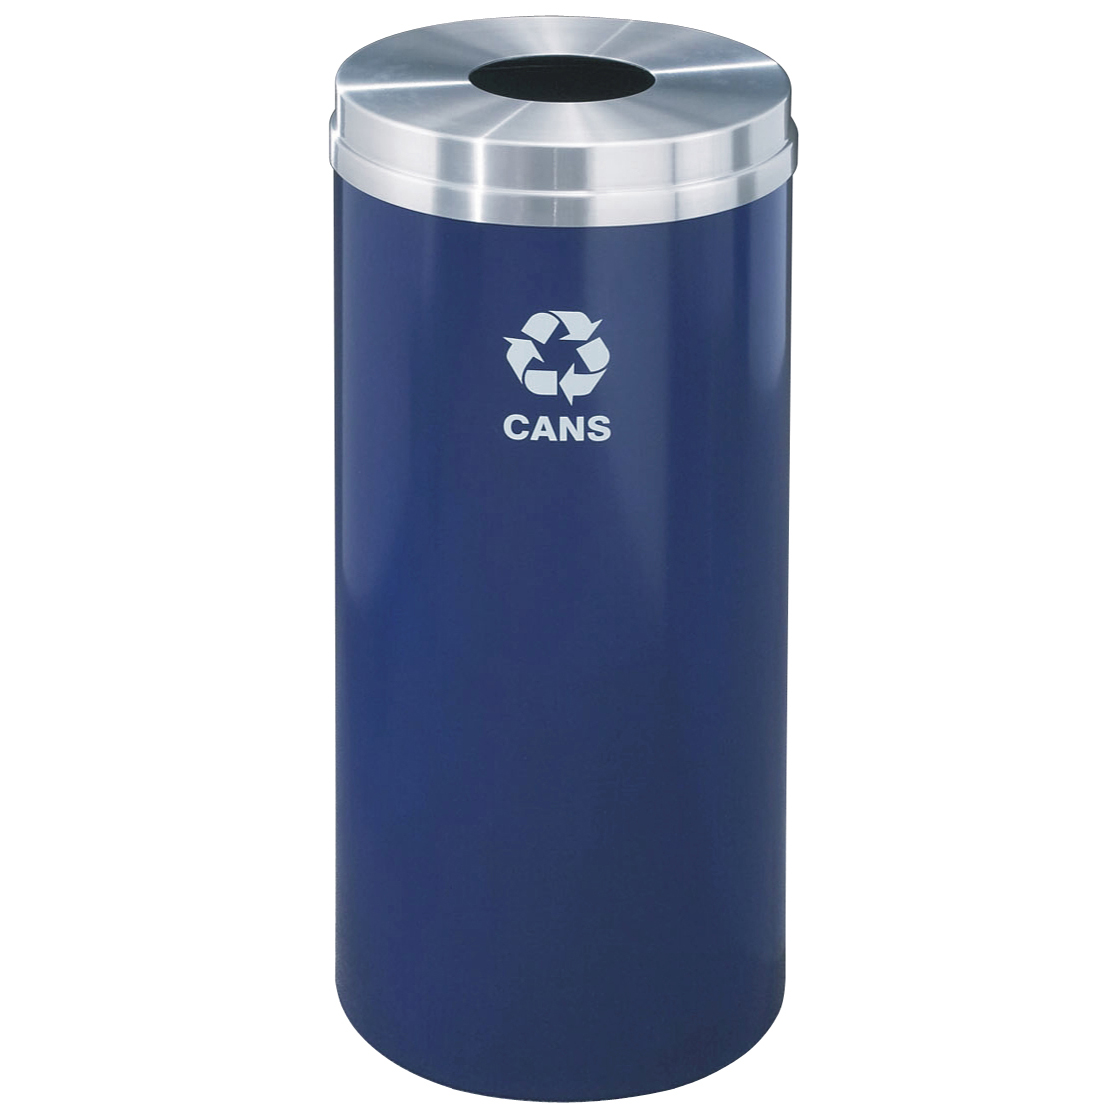 Pedestal Table Plastic Coated Metal Bar Height Perforated Portable additionally What If There Was No Such Thing As Blue moreover Safco Products Evos Series Steel Trashcan in addition 125 EXP52GN further Kings Sceptre. on outdoor trash receptacle steel